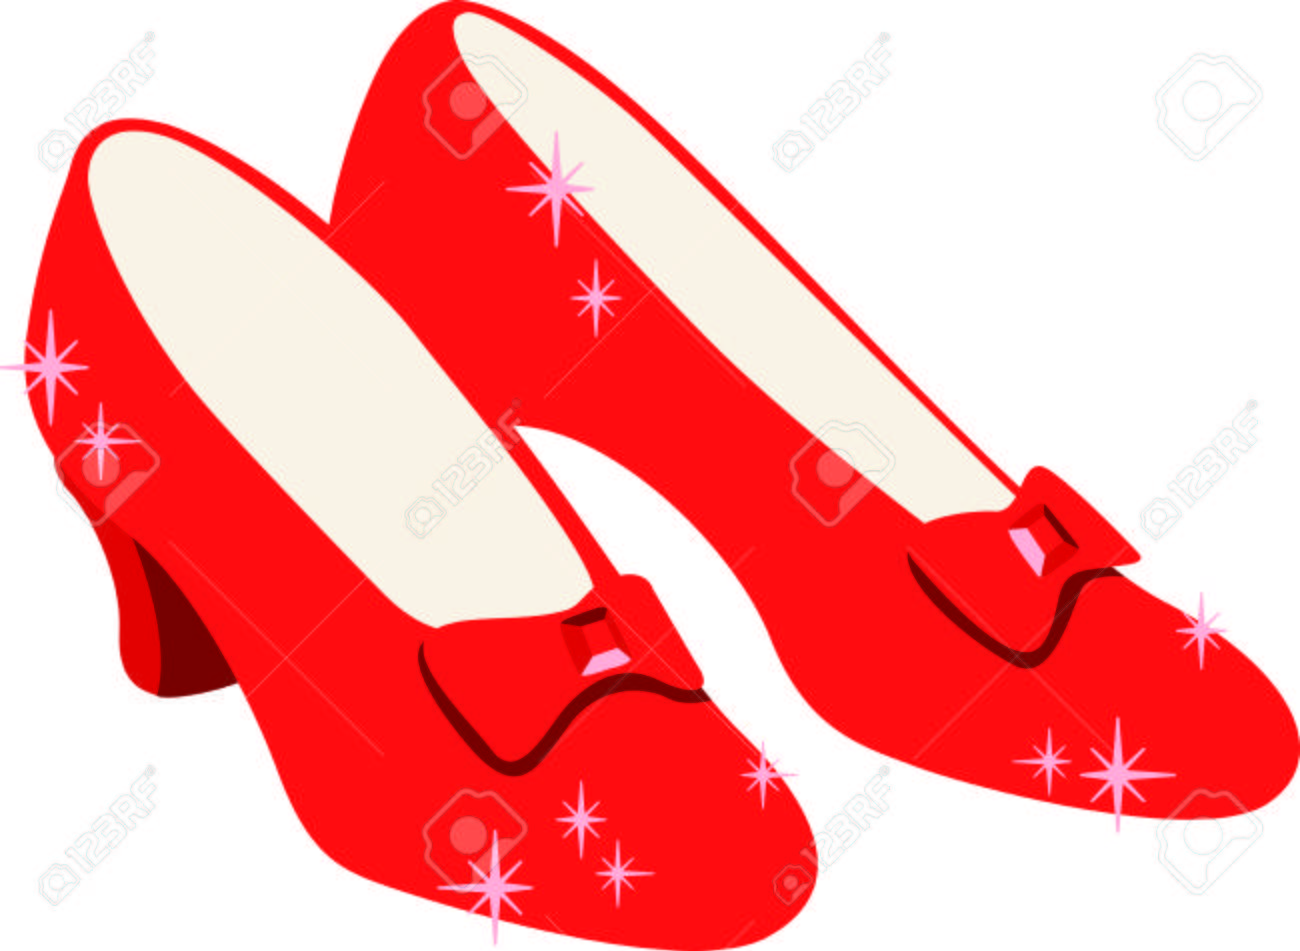 Get these ruby slippers image for your next design..